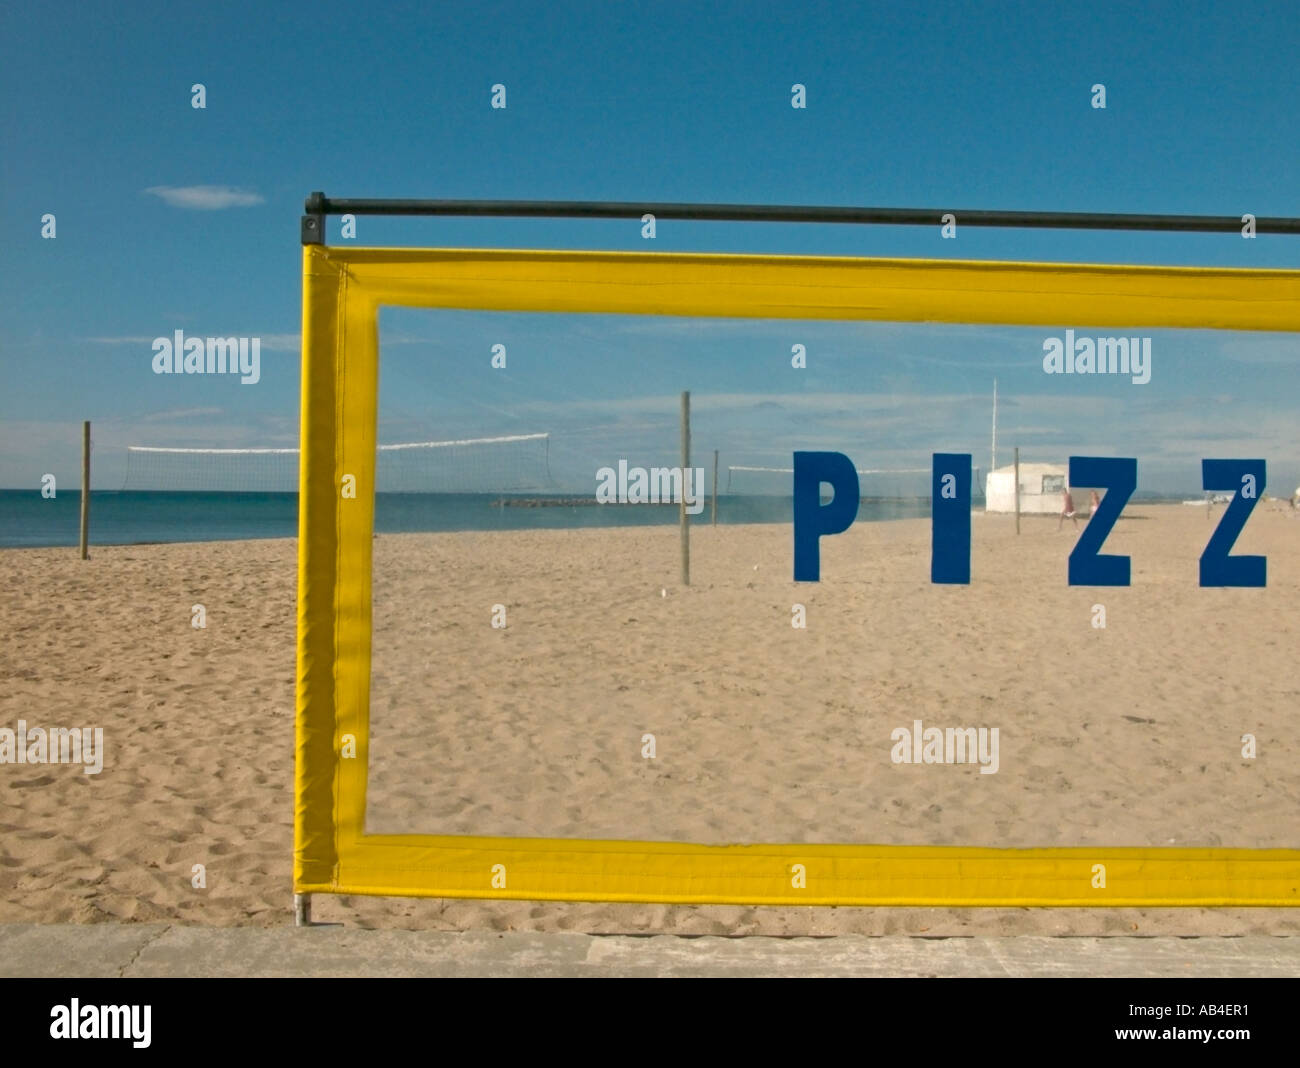 looking through a pizza snack bar wind shield onto a beach, france. - Stock Image